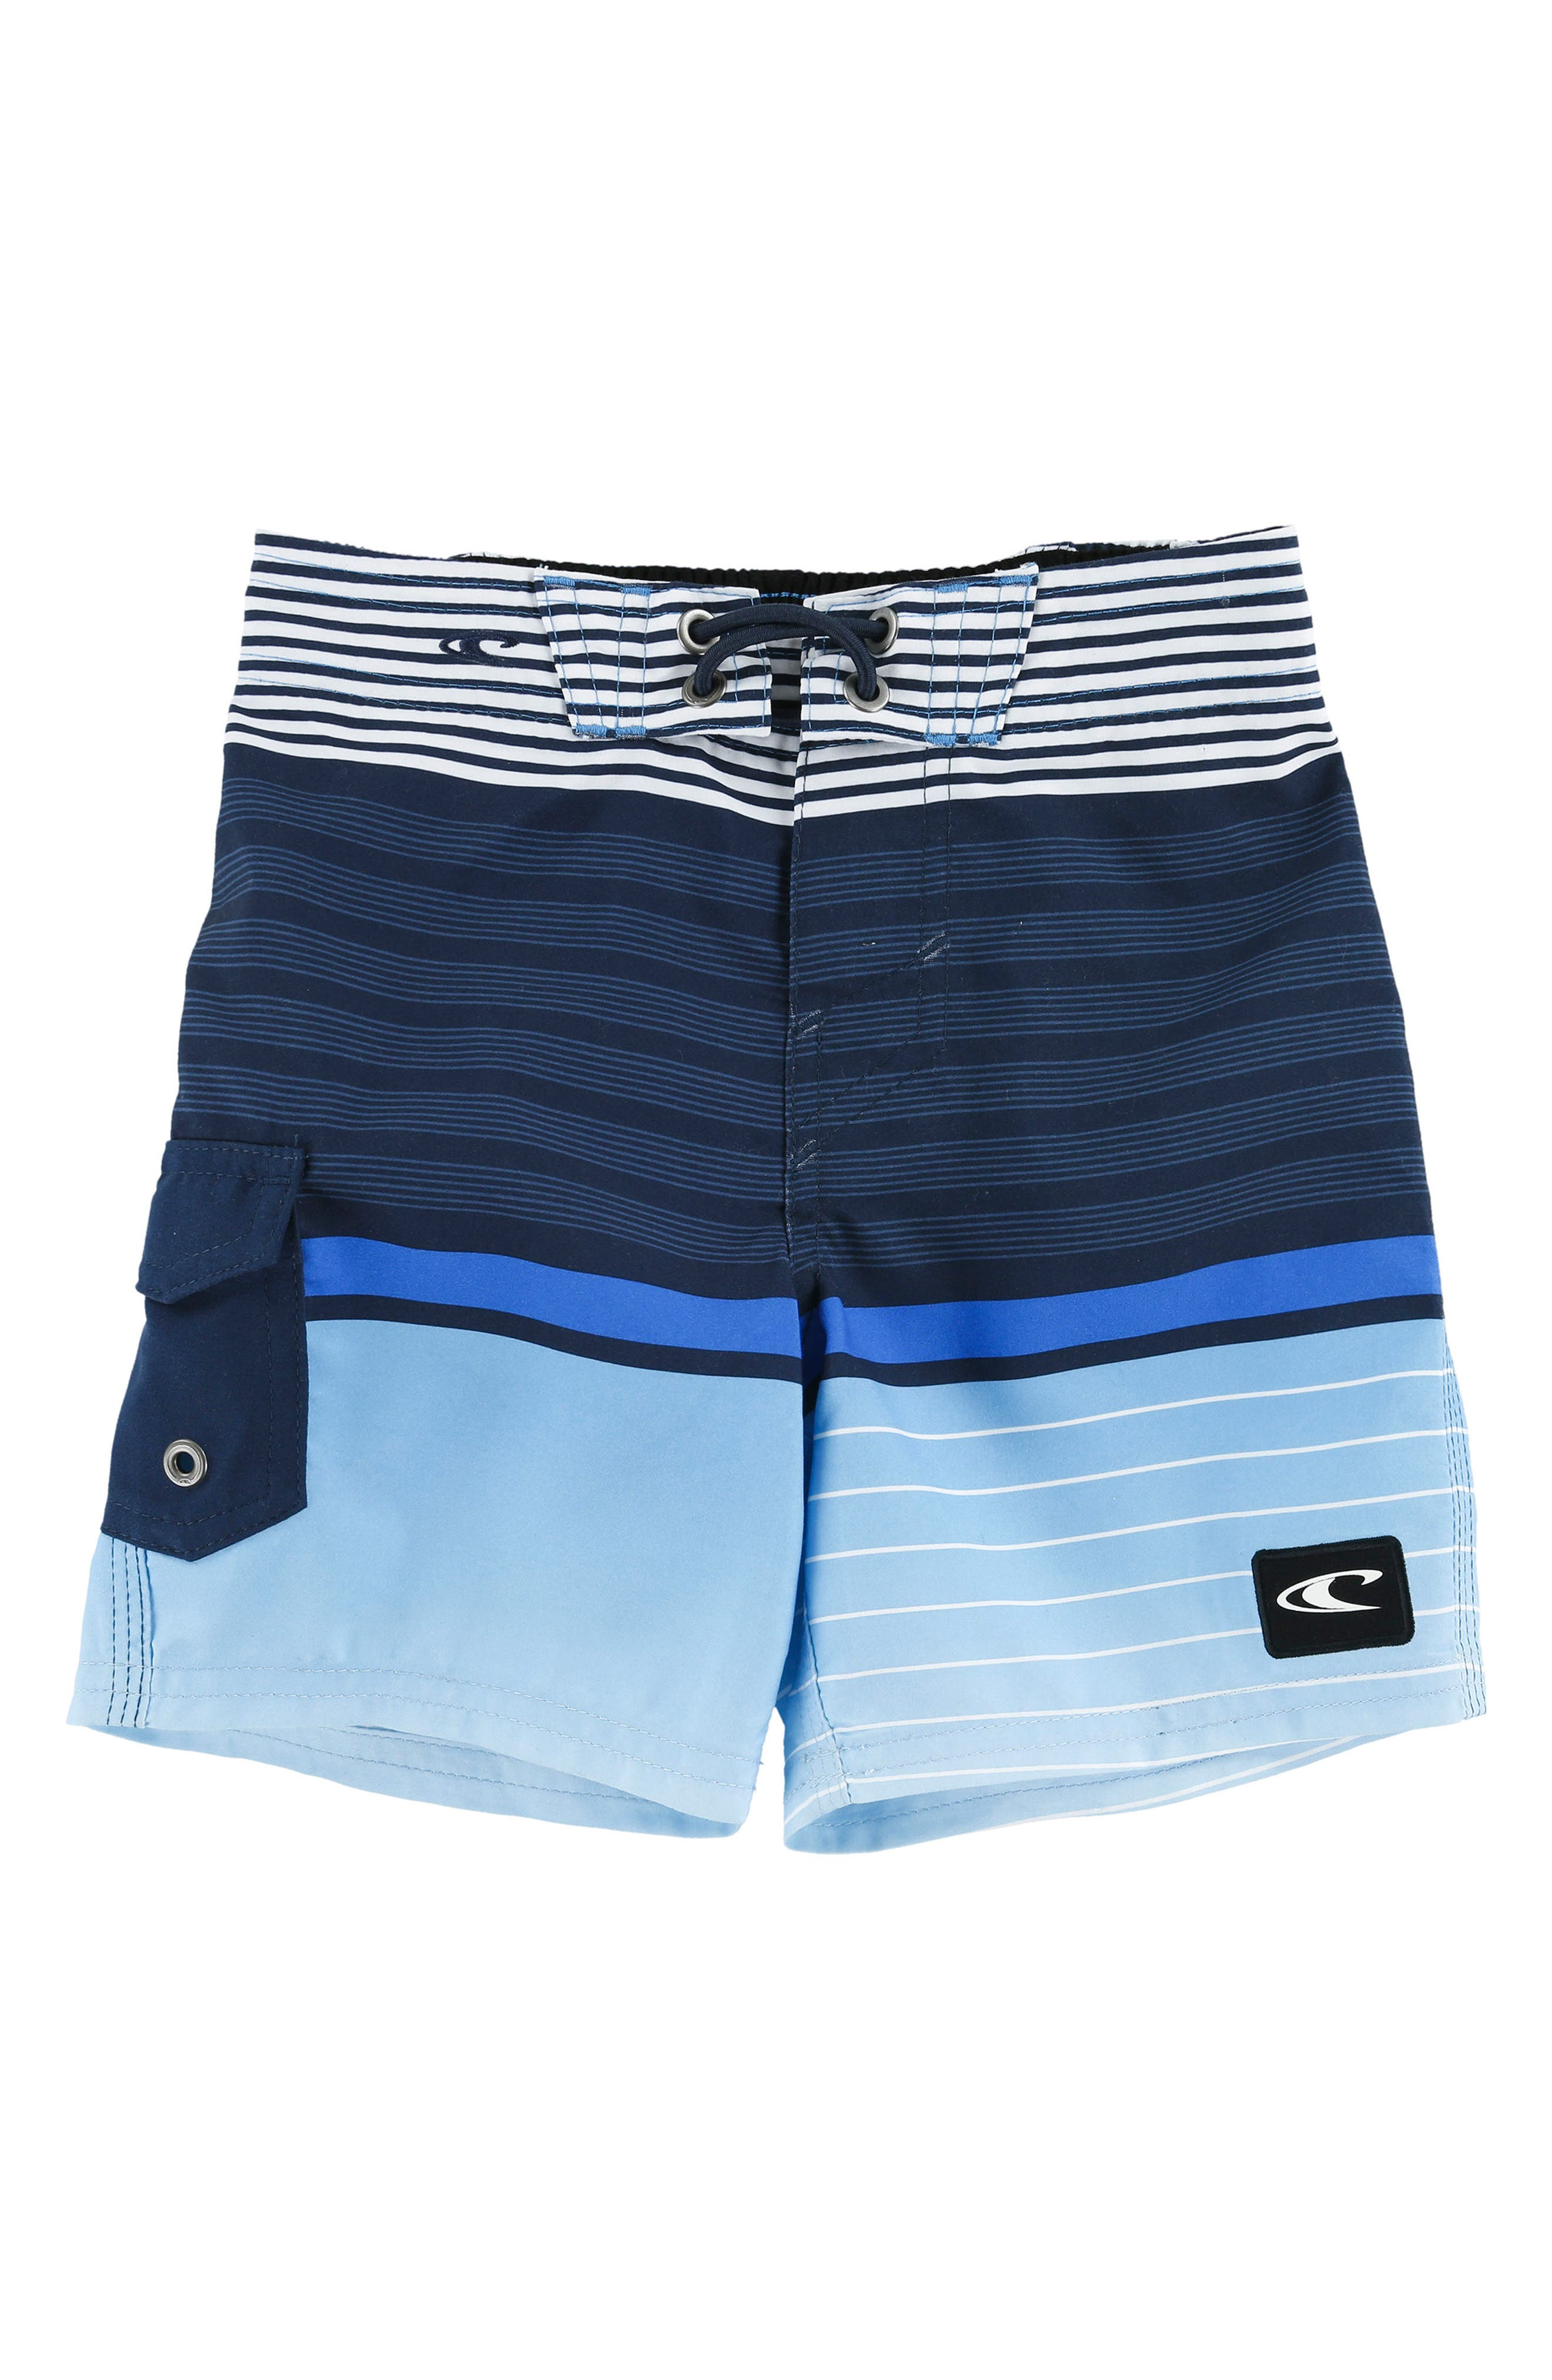 Alternate Image 1 Selected - O'Neill Lennox Stripe Board Shorts (Toddler Boys)